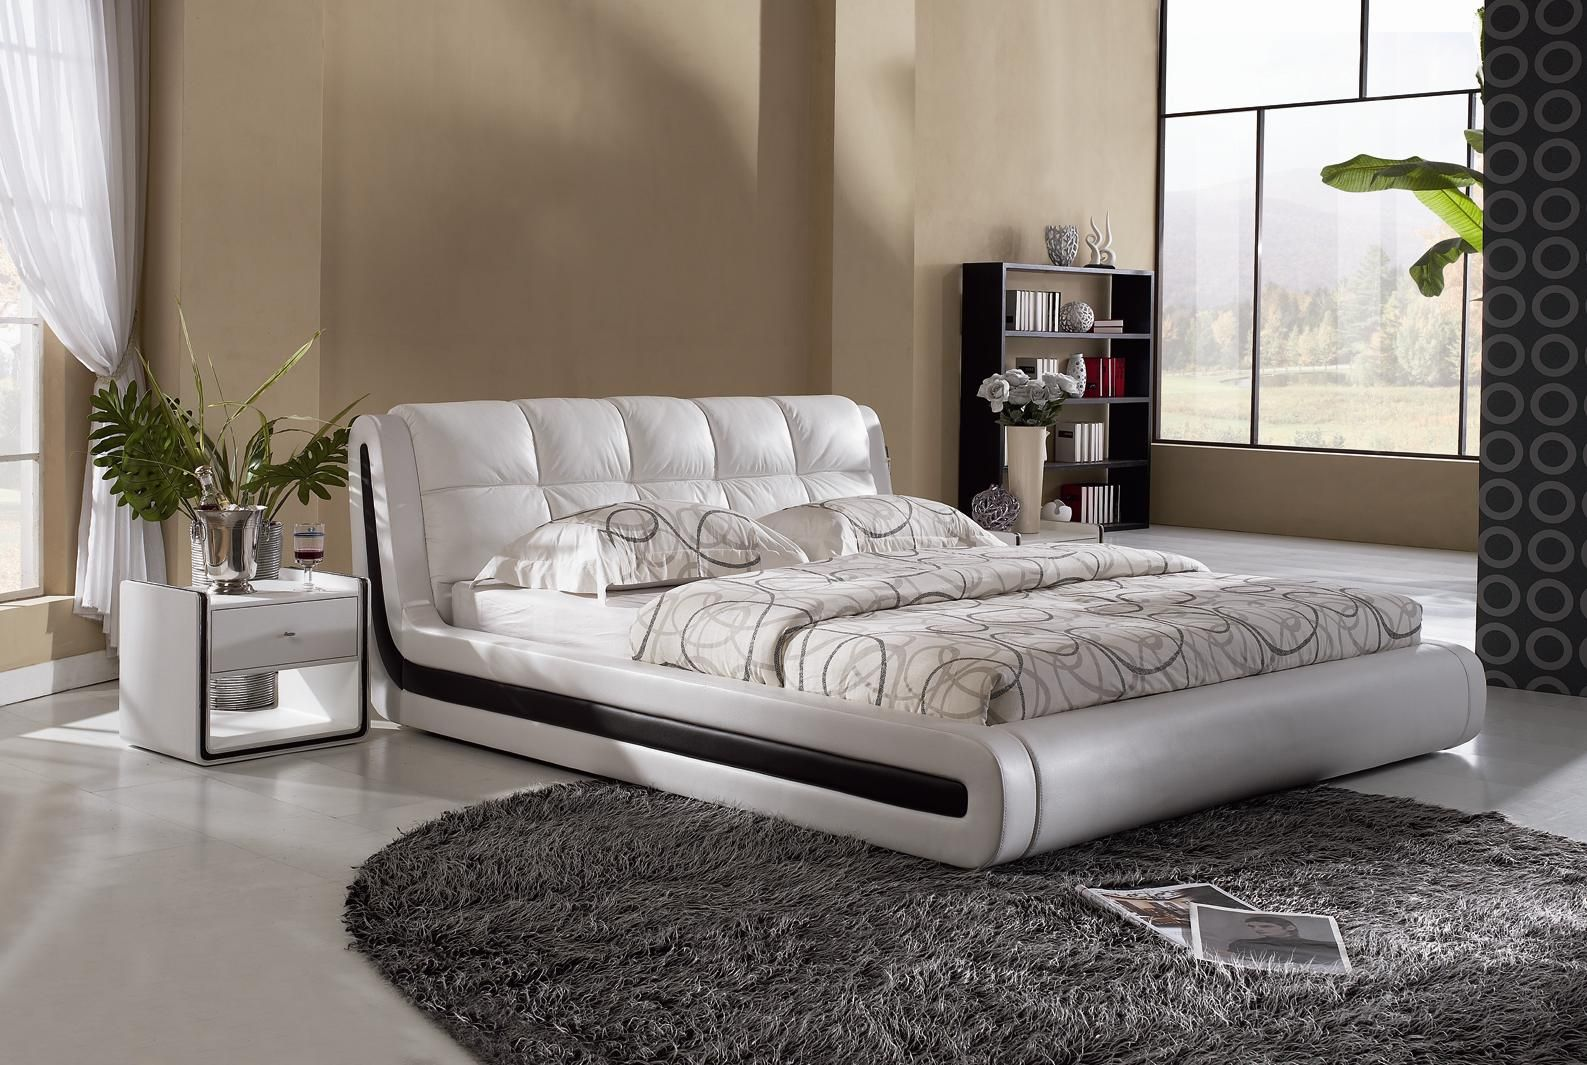 Modern bed designs home interior designer adult bedroom for Bedroom cot designs